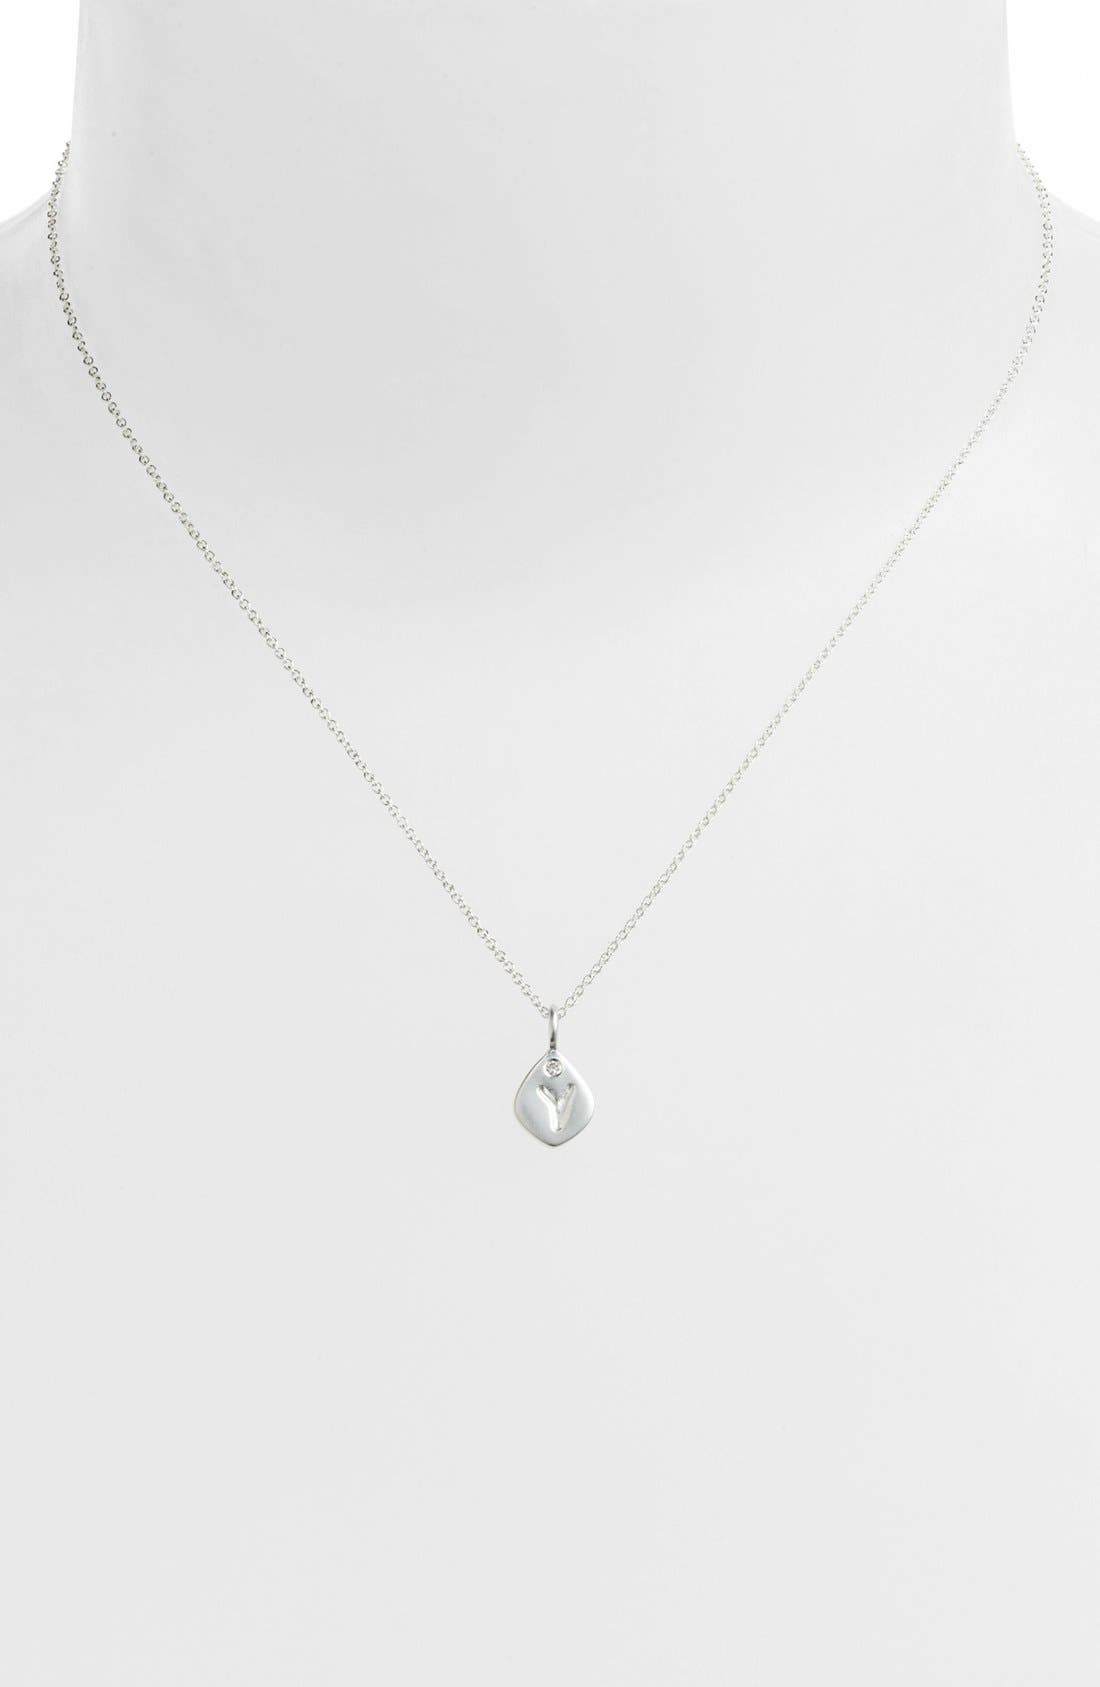 Main Image - NuNu Designs Small Initial Pendant Necklace